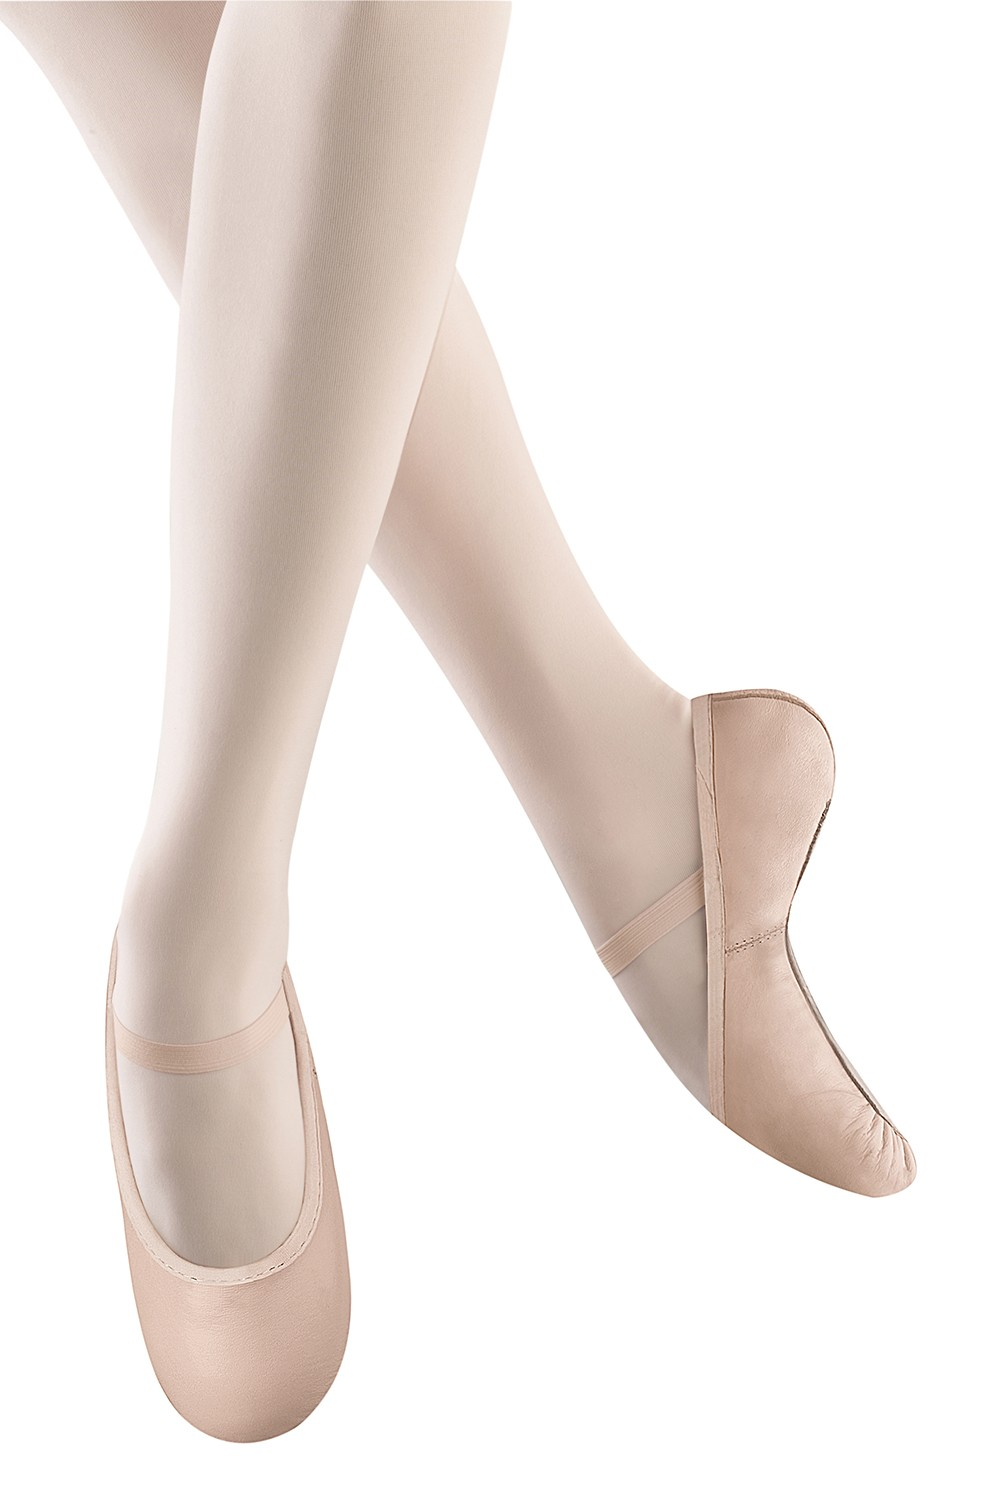 Belle Girl's Ballet Shoes